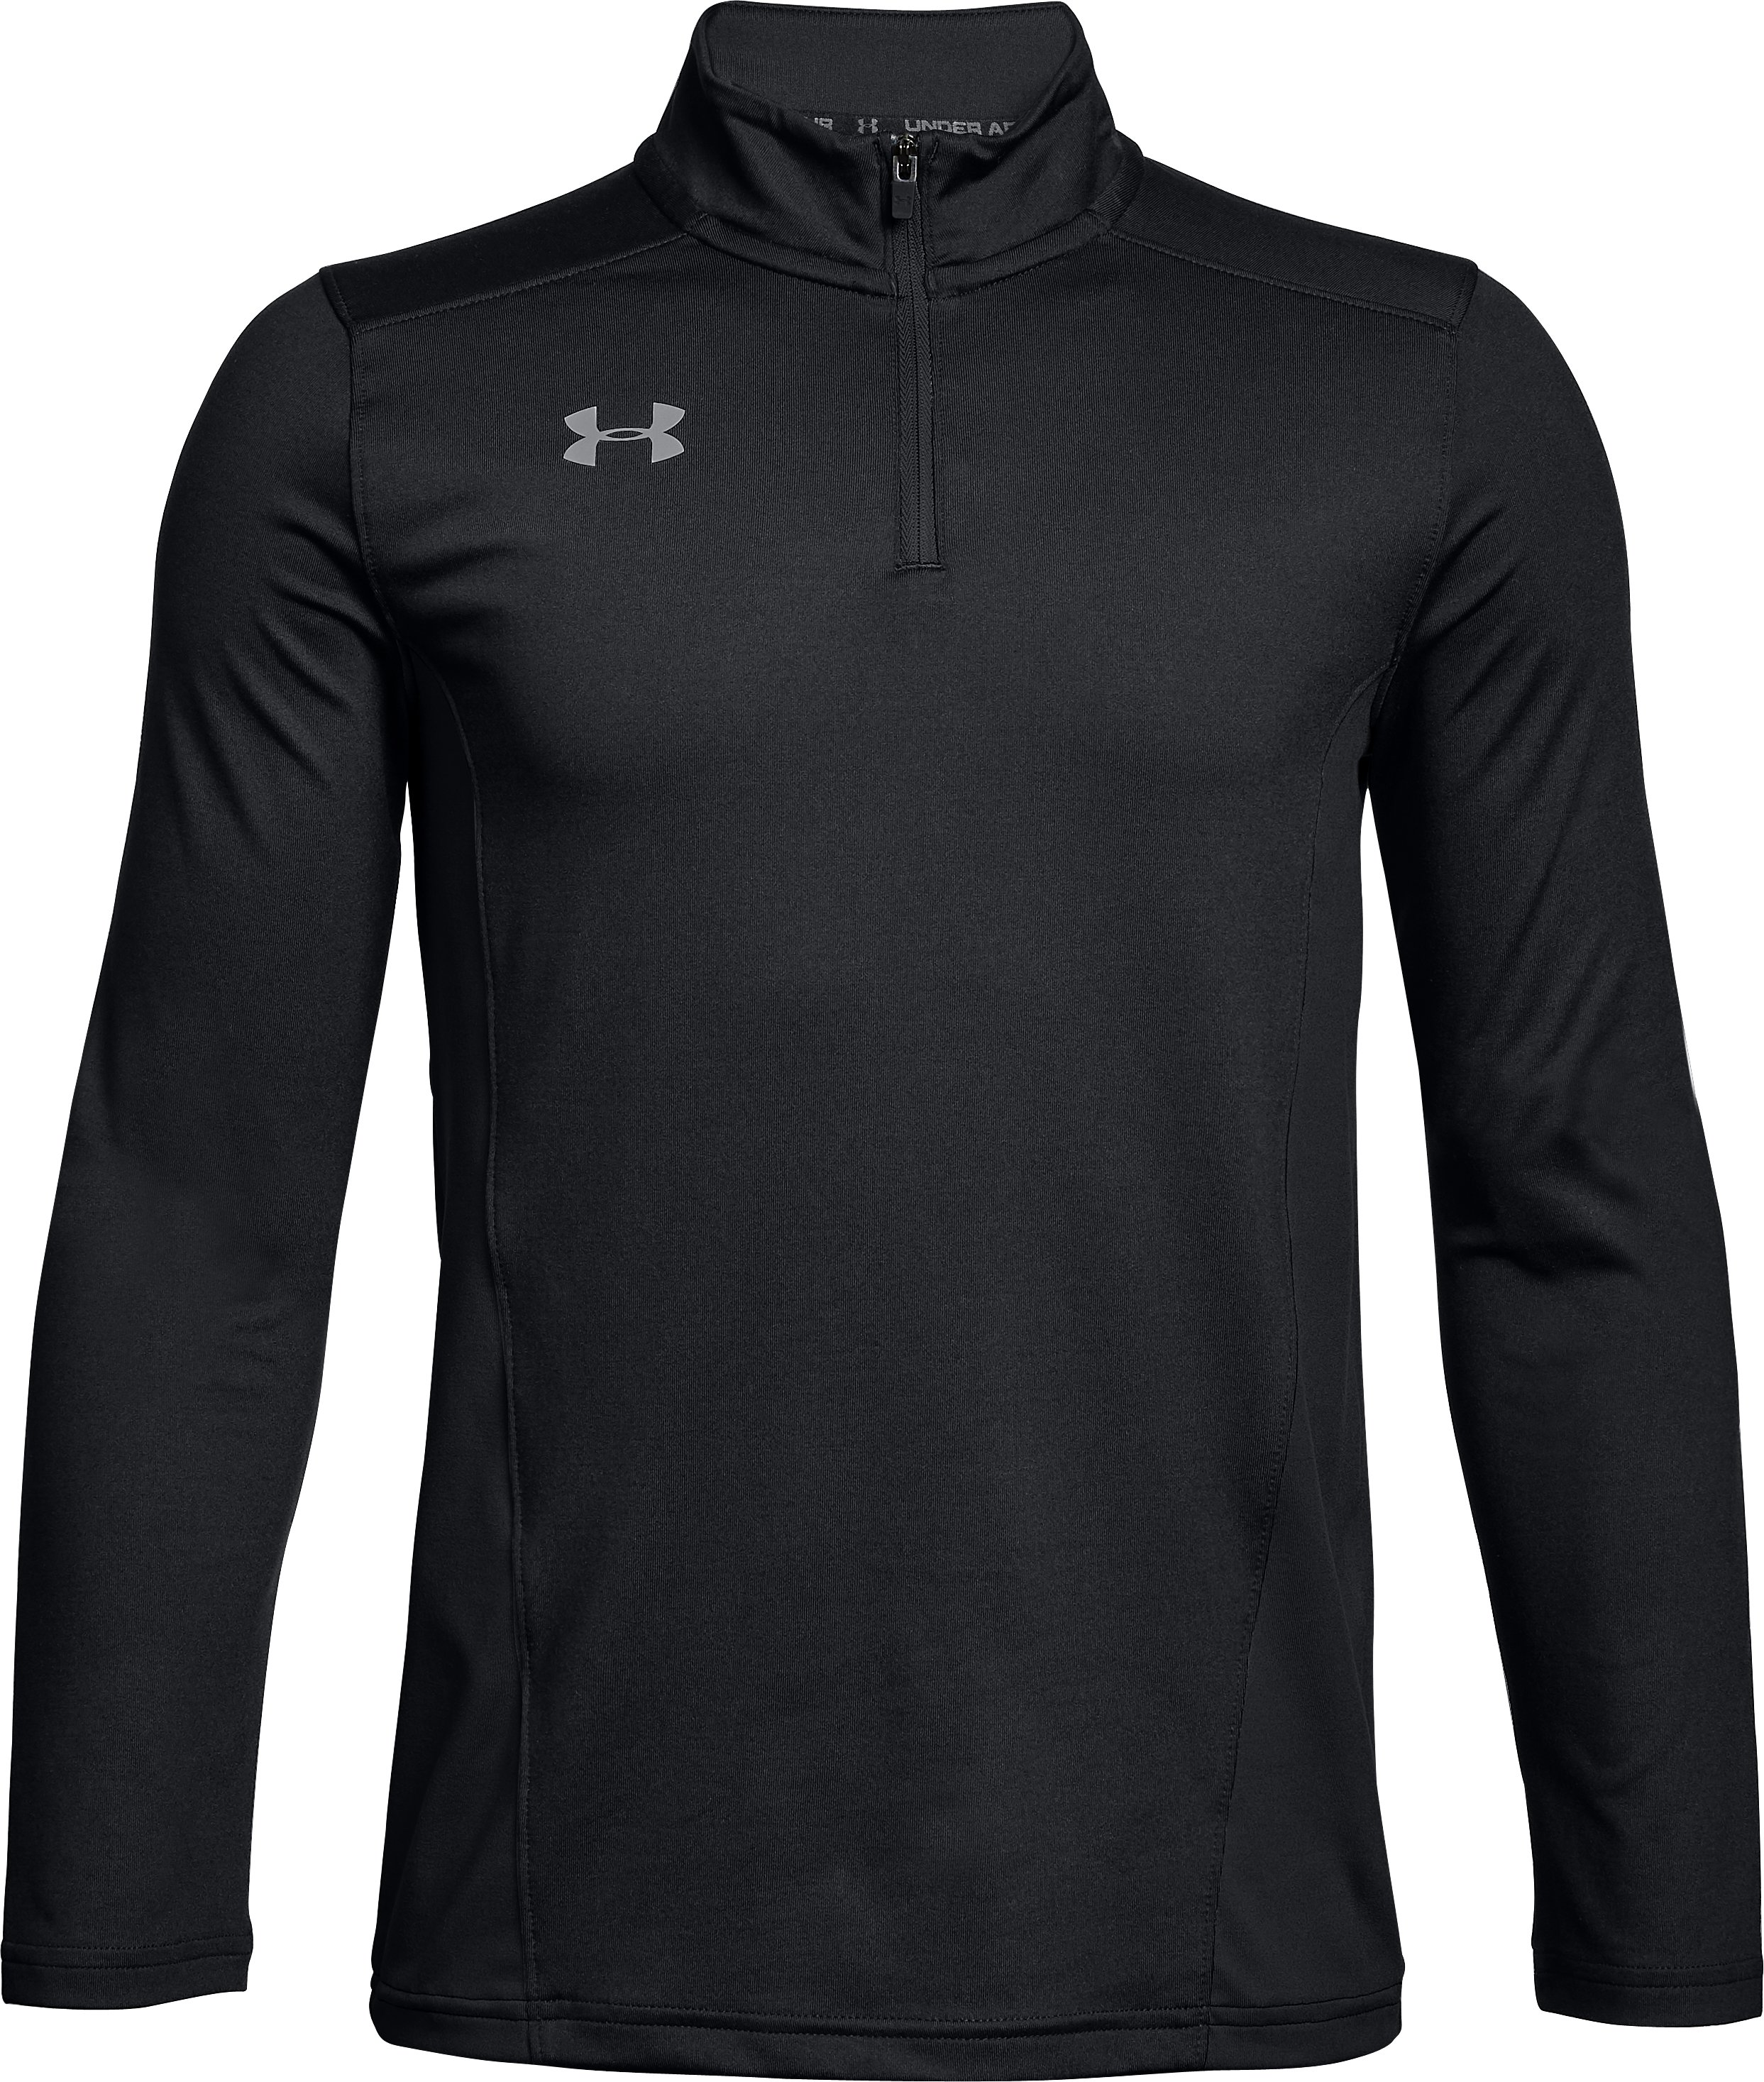 Youth UA Challenger II Midlayer Shirt, Black